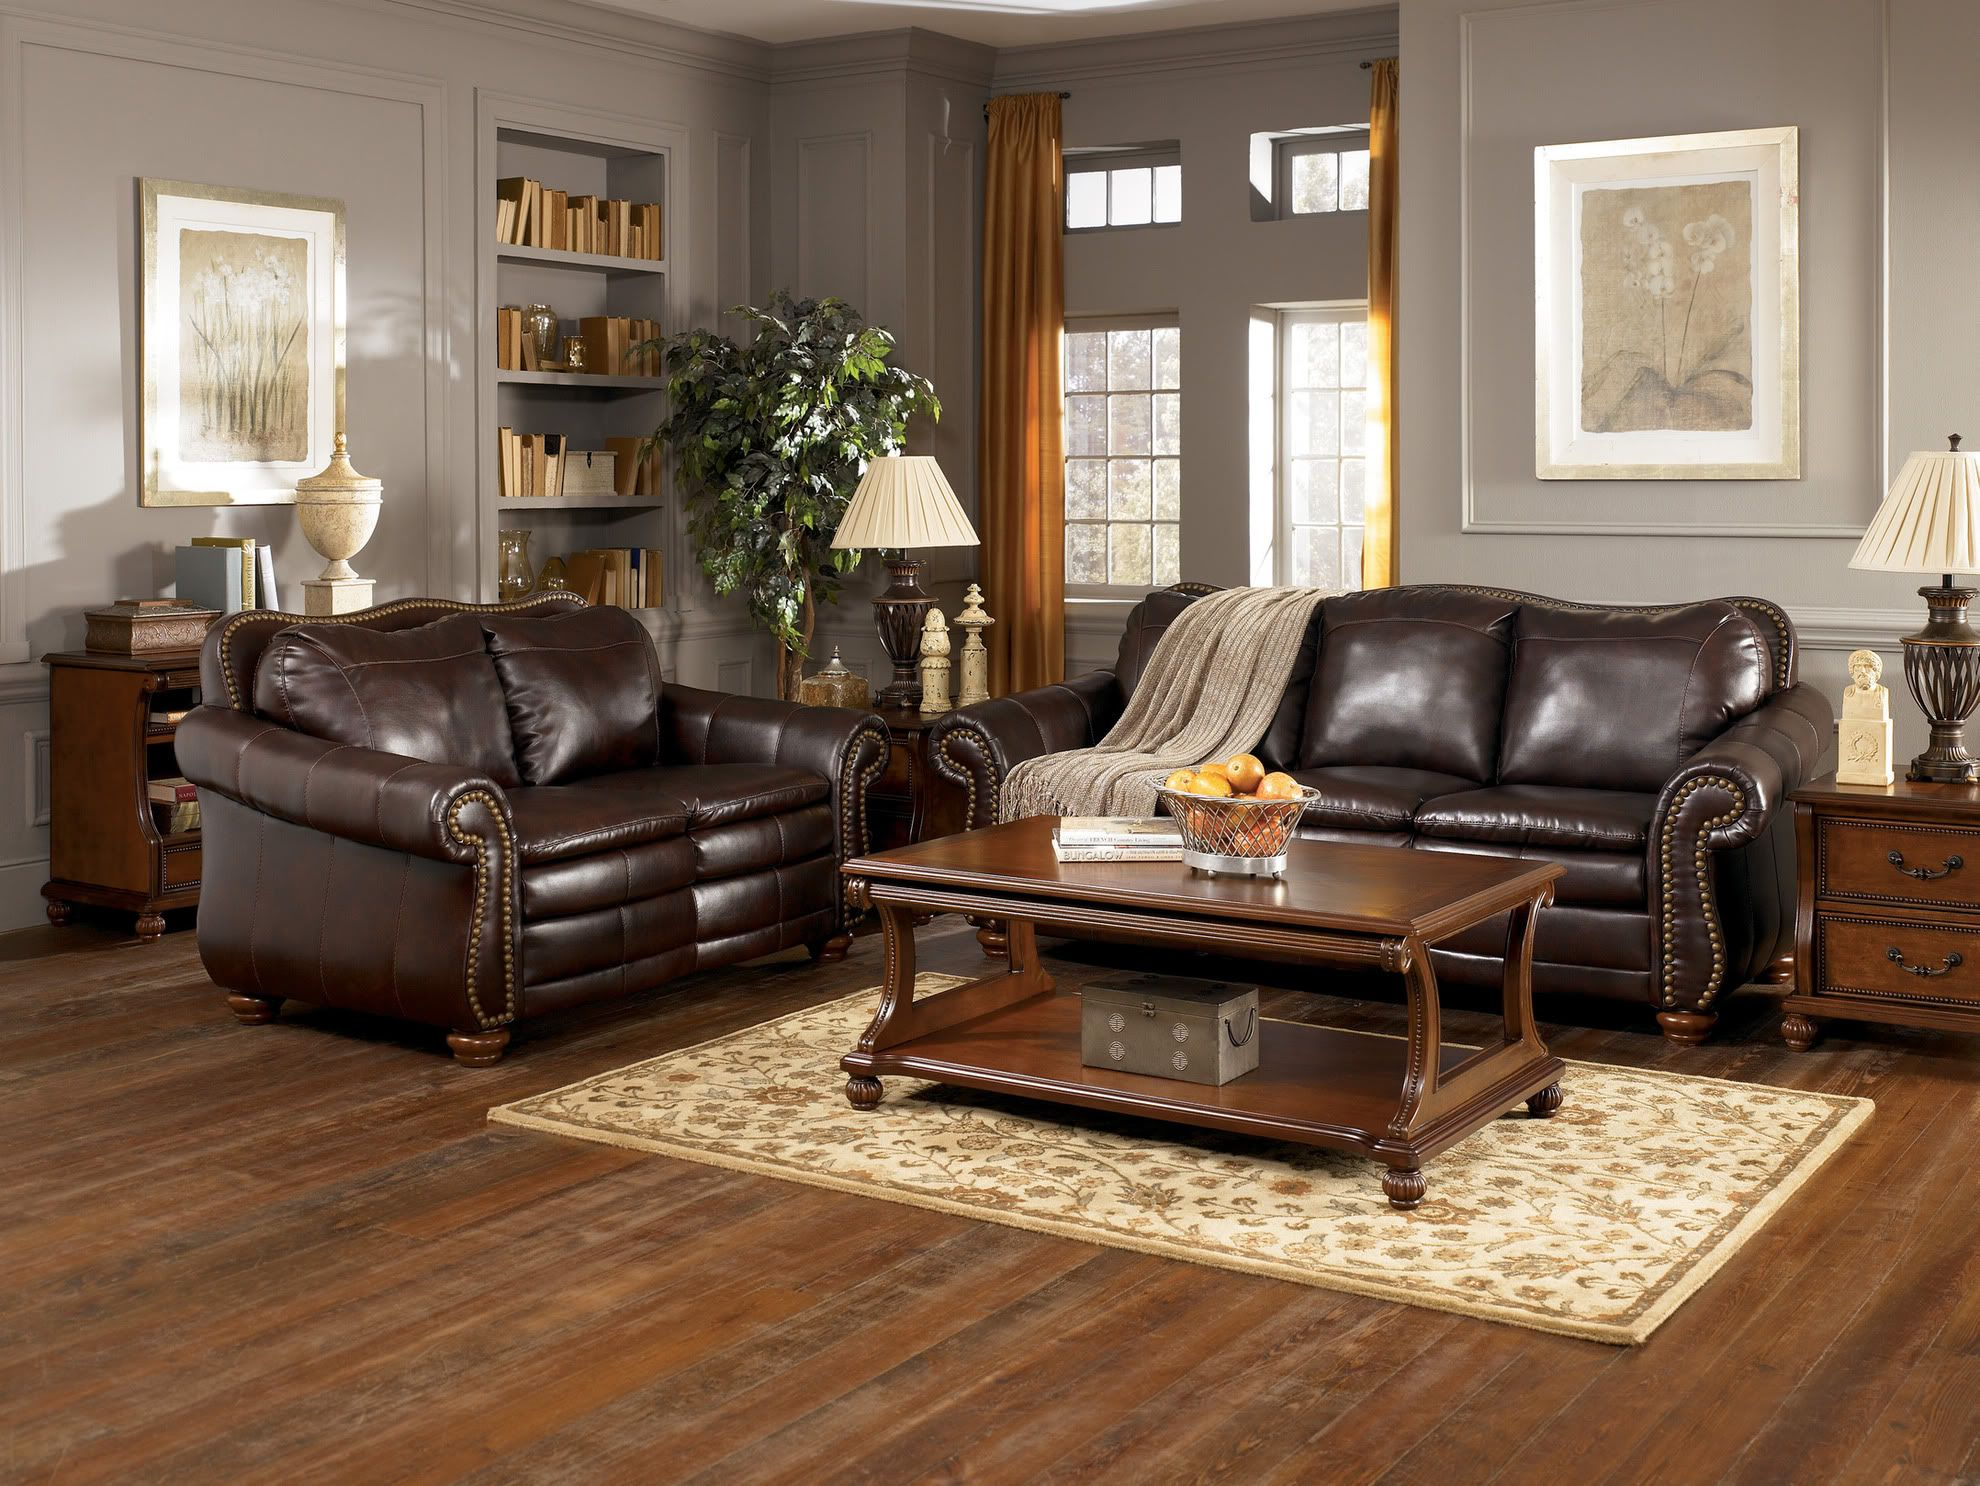 Fetching grey living room with brown furniture design for Dark grey furniture paint